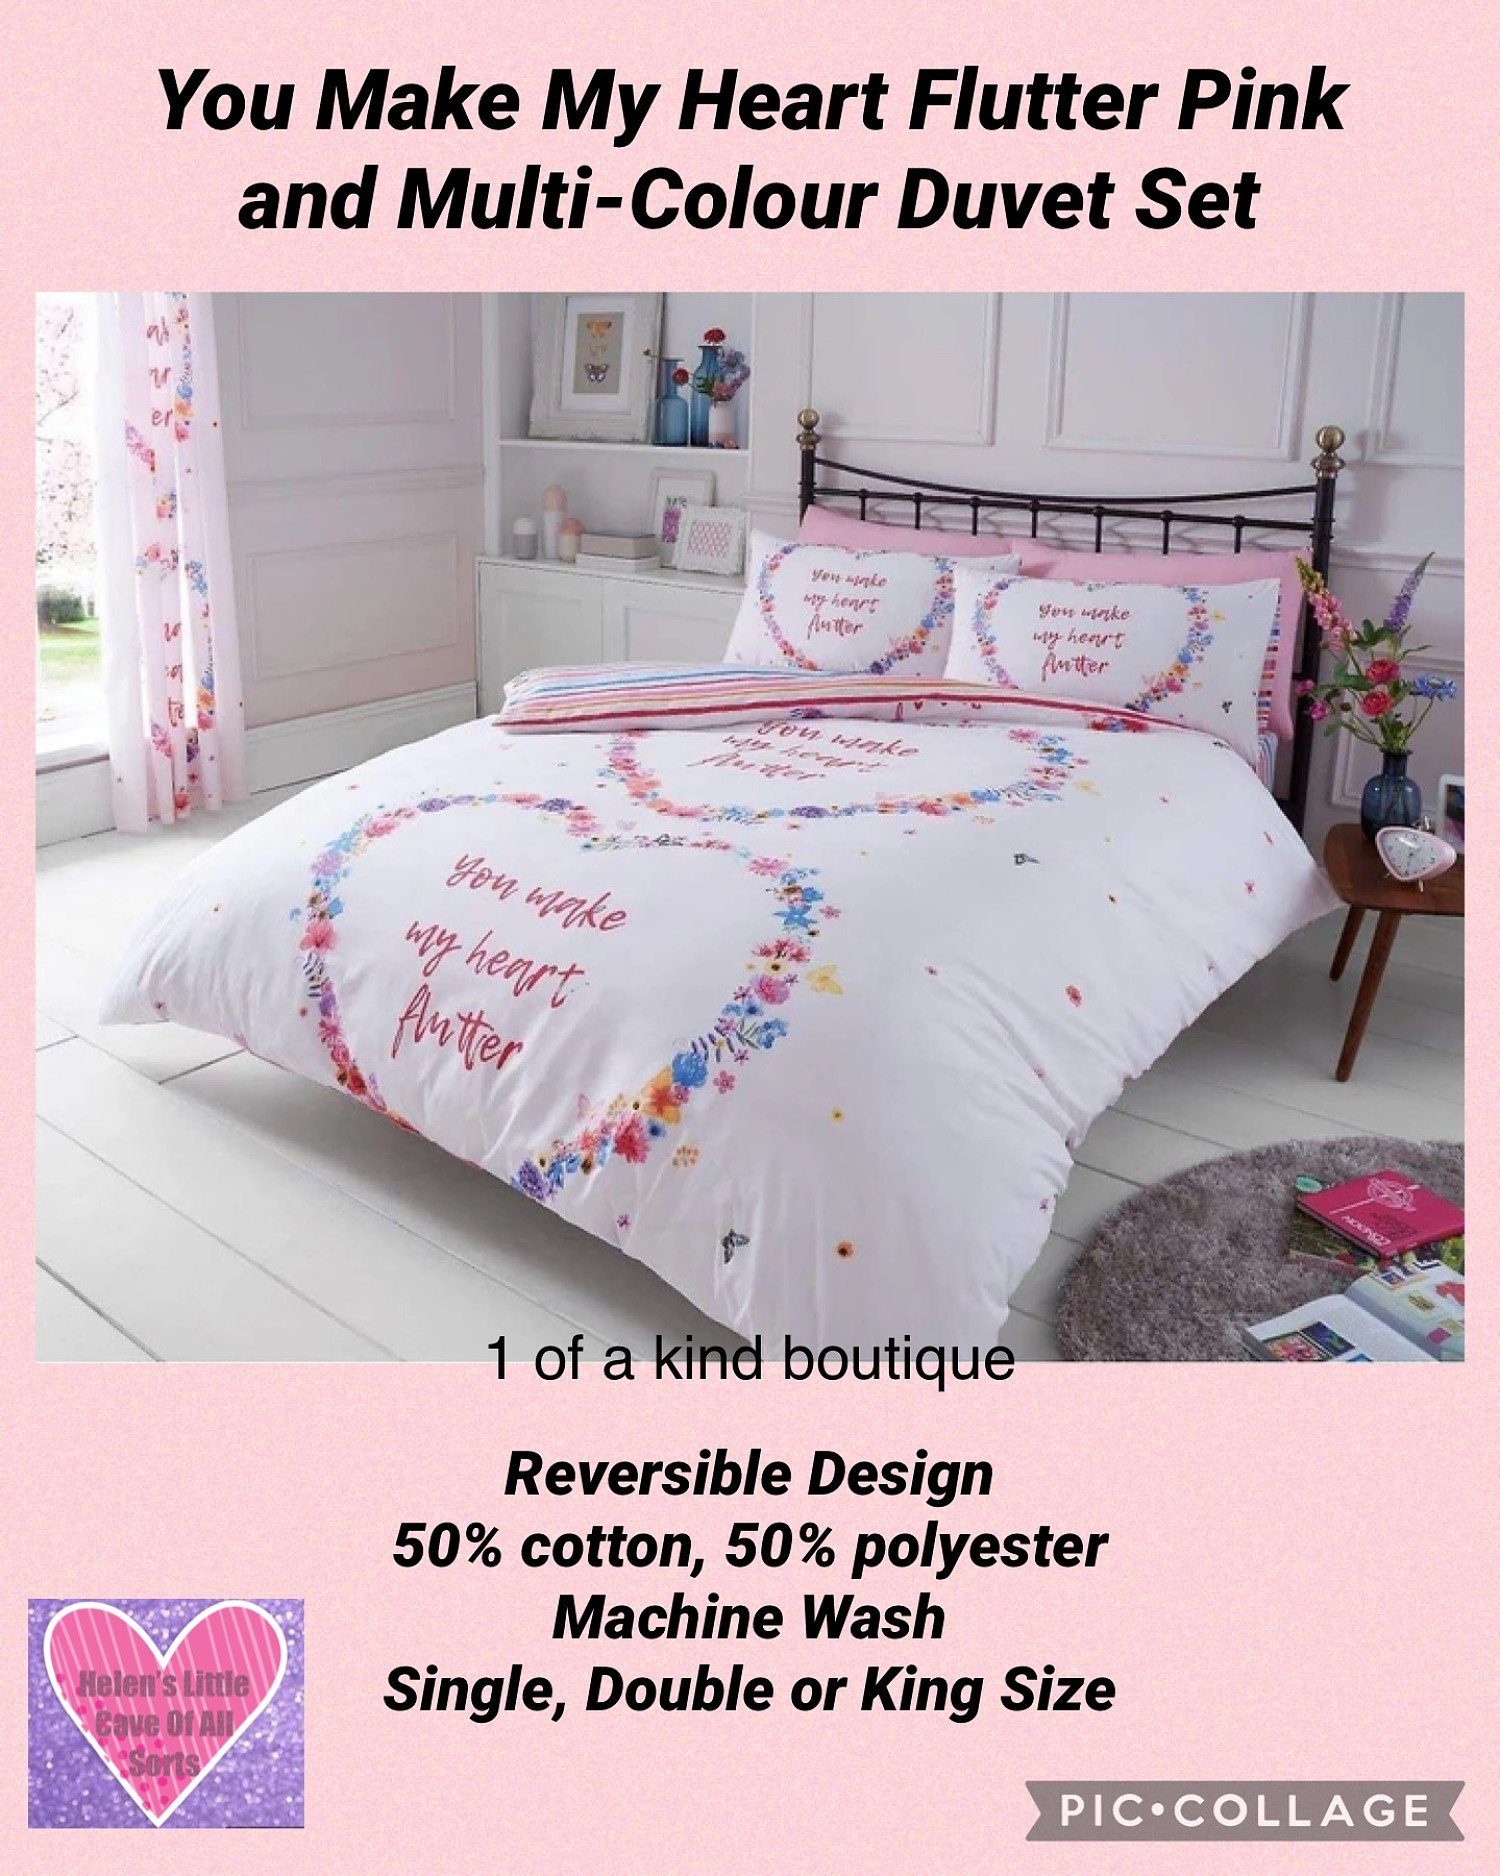 You Make My Heart Flutter Pink and Multi-Colour Duvet Set Free Postage